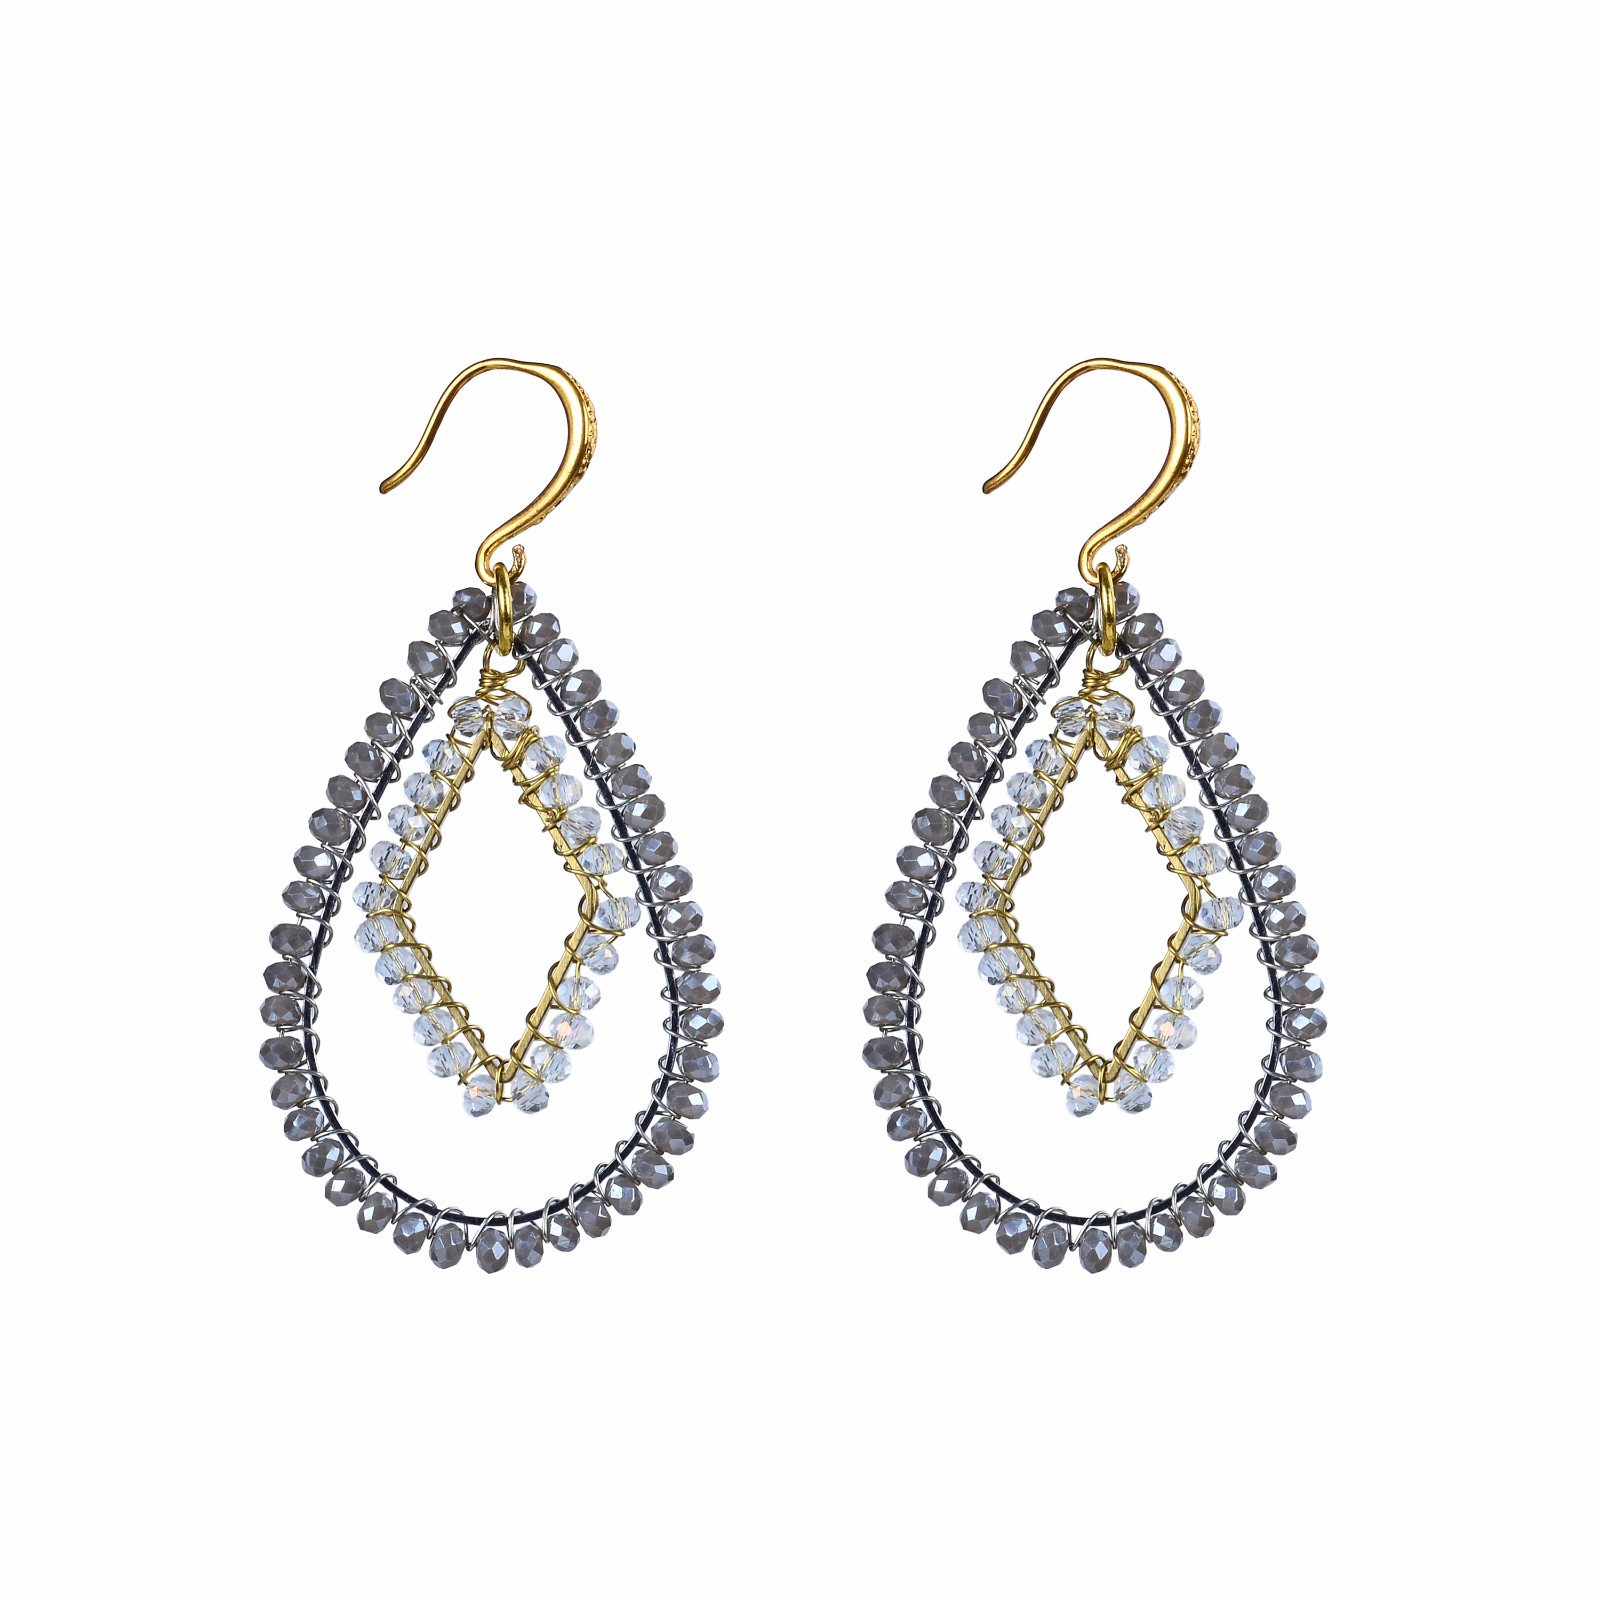 handmade jewelry gray and white crystal beads hoop earrings